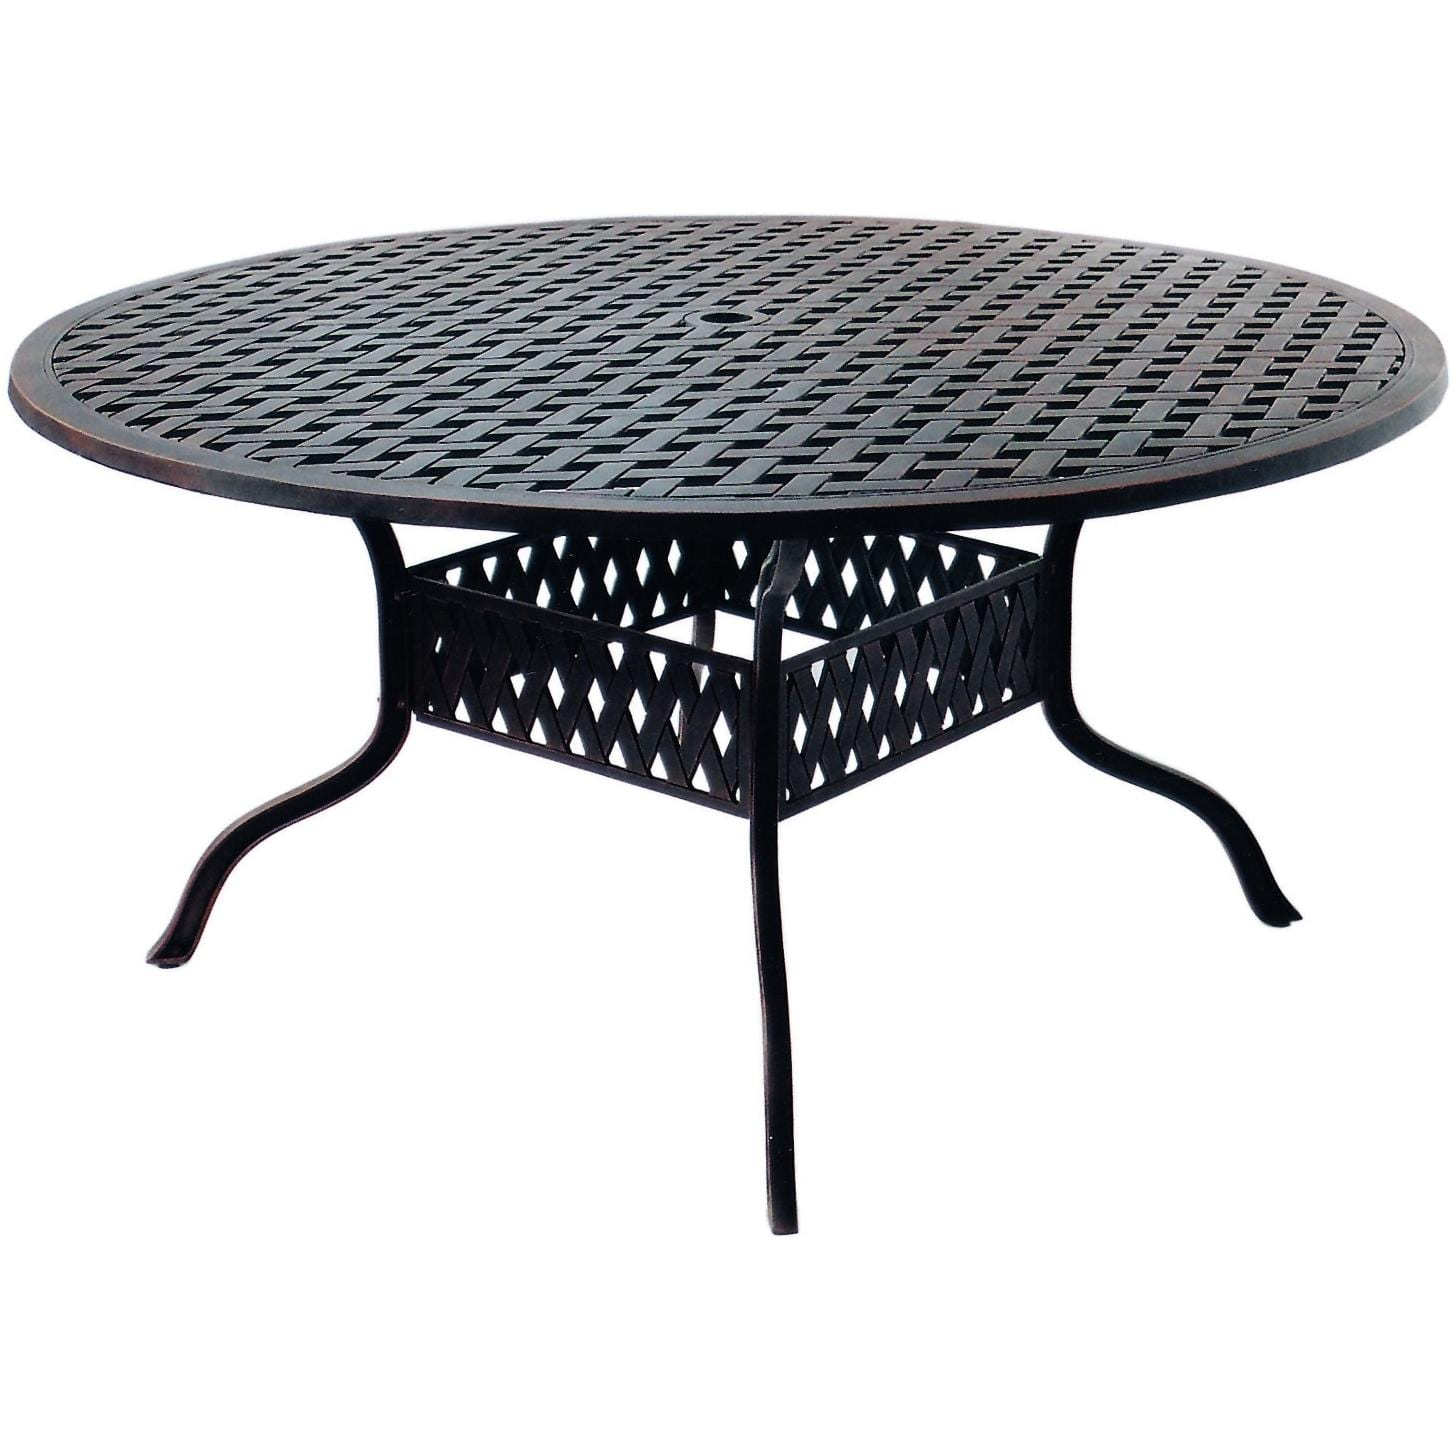 Darlee Series 30 60-Inch Cast Aluminum Patio Dining Table